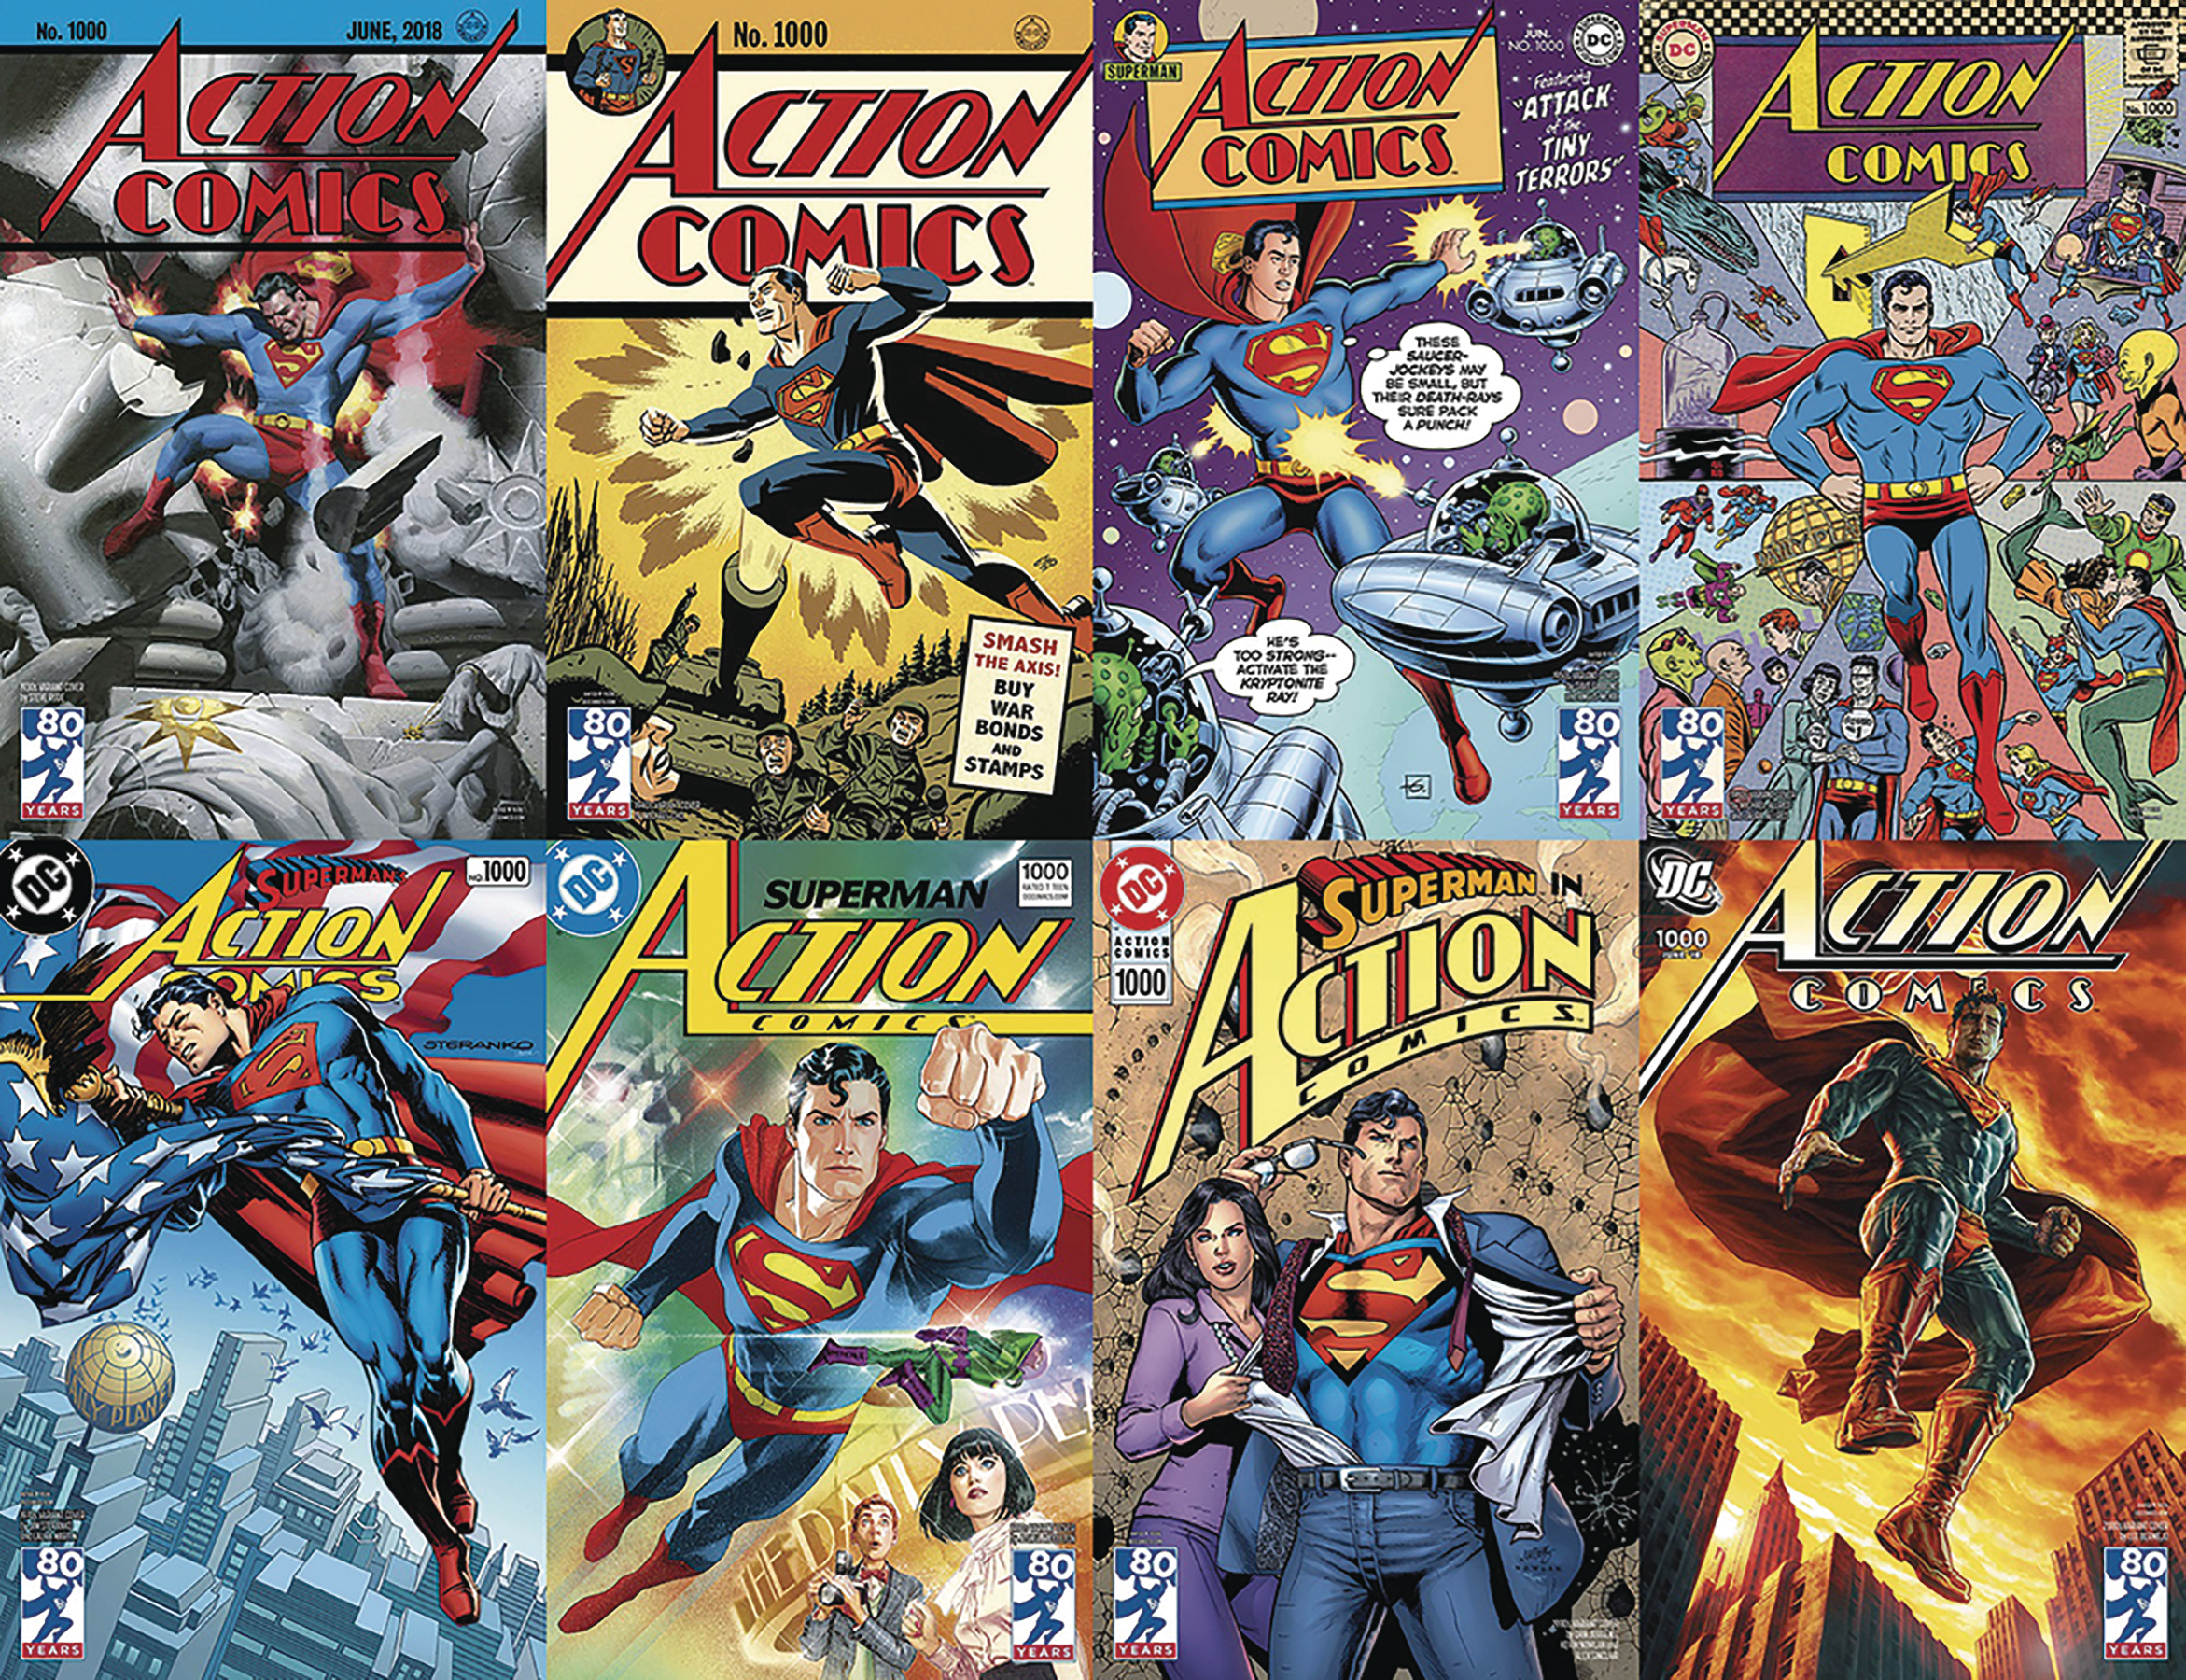 DF ACTION COMICS #1000 JURGENS SGN DECADES COMPLETE